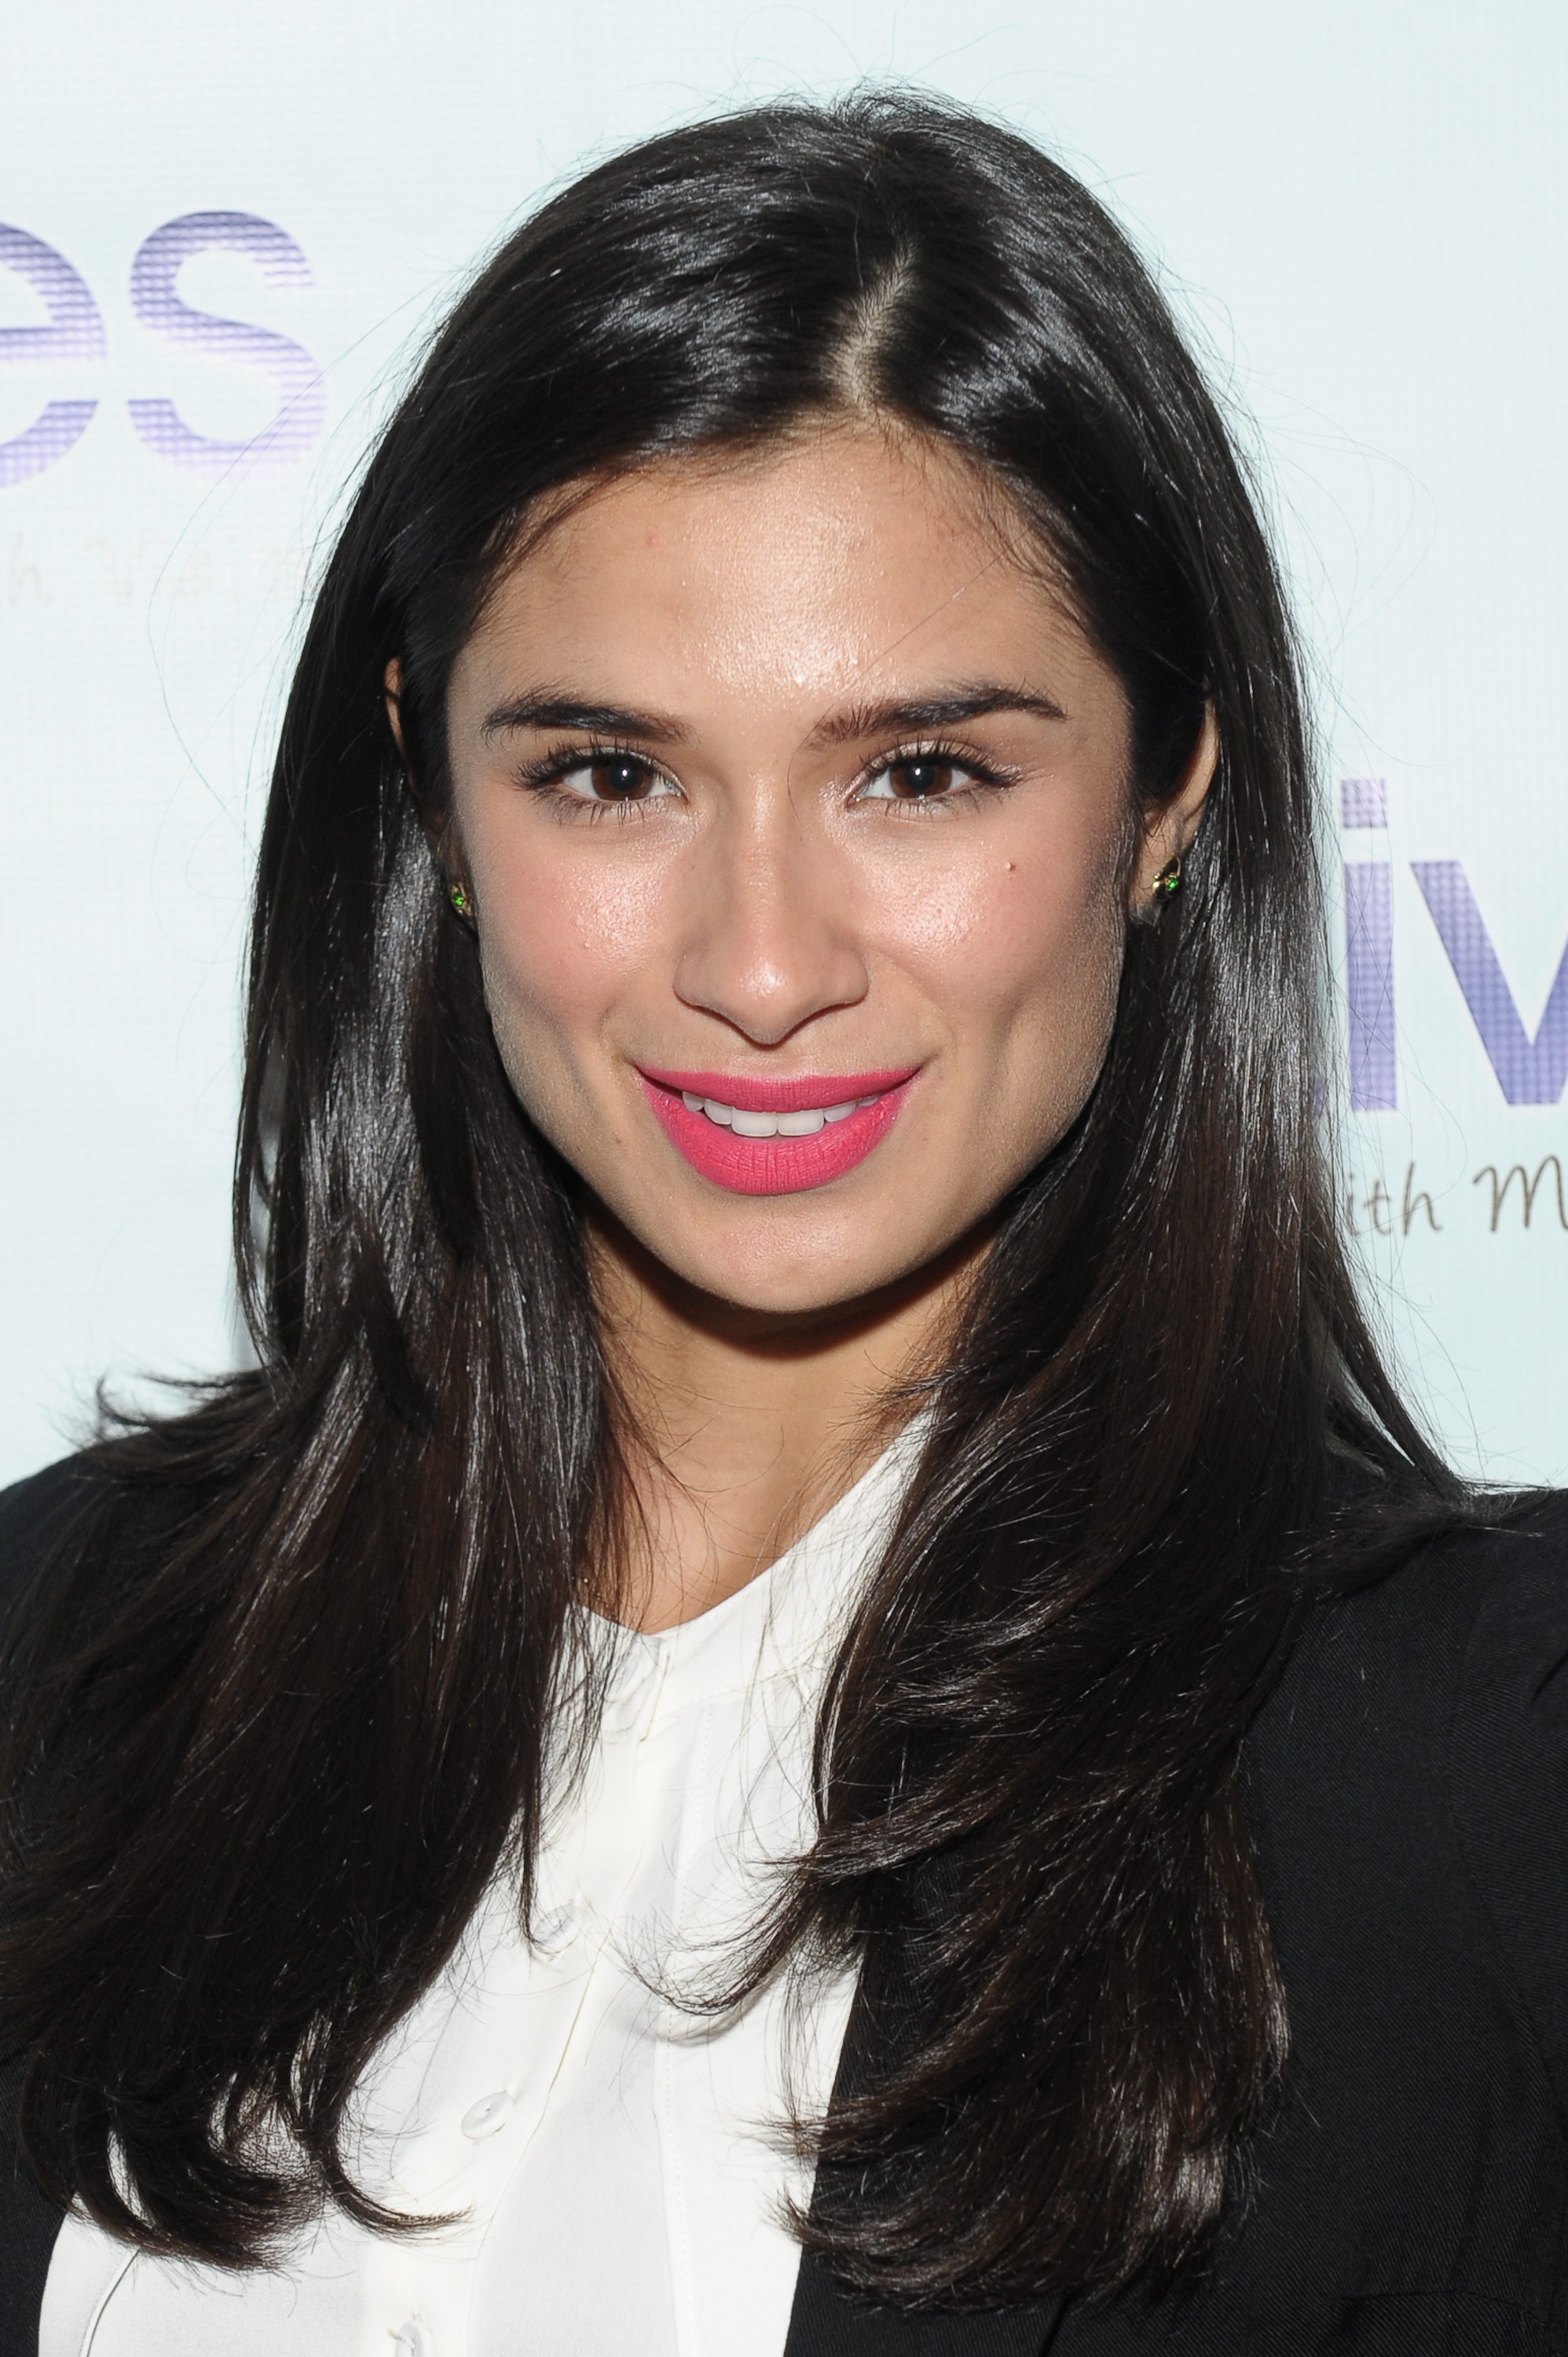 Celebrity Diane Guerrero nudes (81 photos), Pussy, Is a cute, Twitter, cleavage 2006